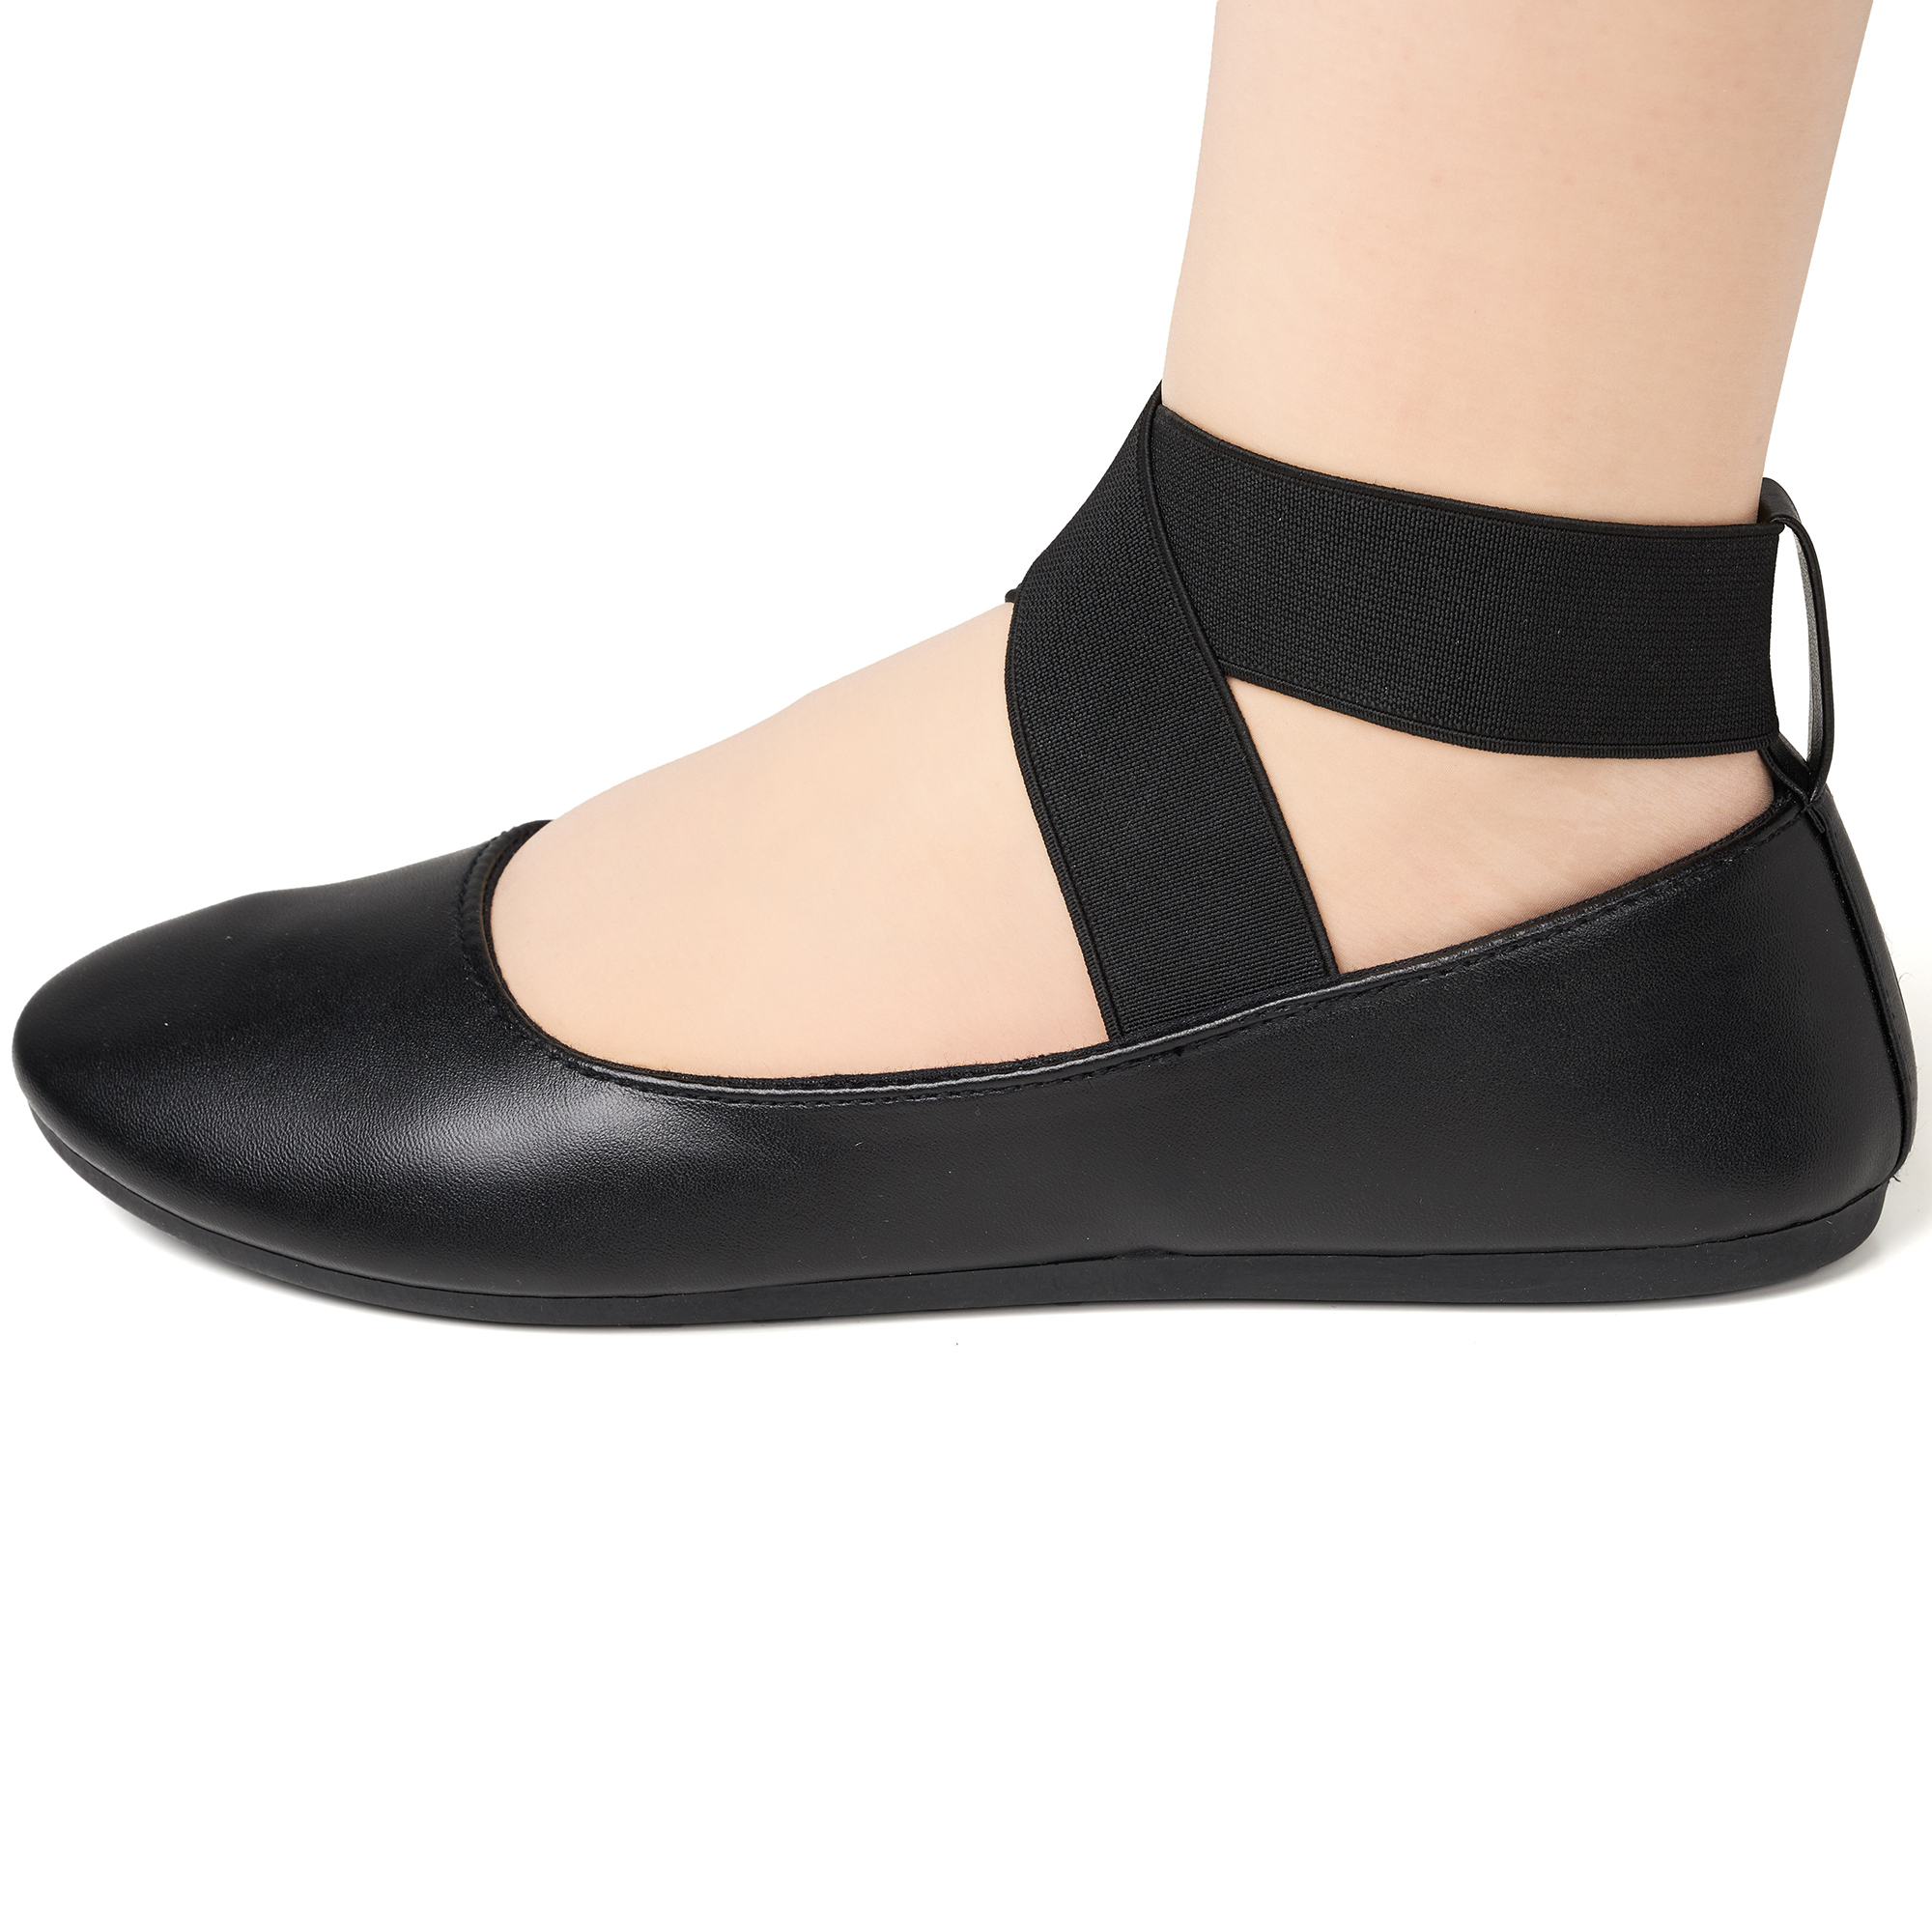 Alpine-Swiss-Peony-Womens-Ballet-Flats-Elastic-Ankle-Strap-Shoes-Slip-On-Loafers thumbnail 20